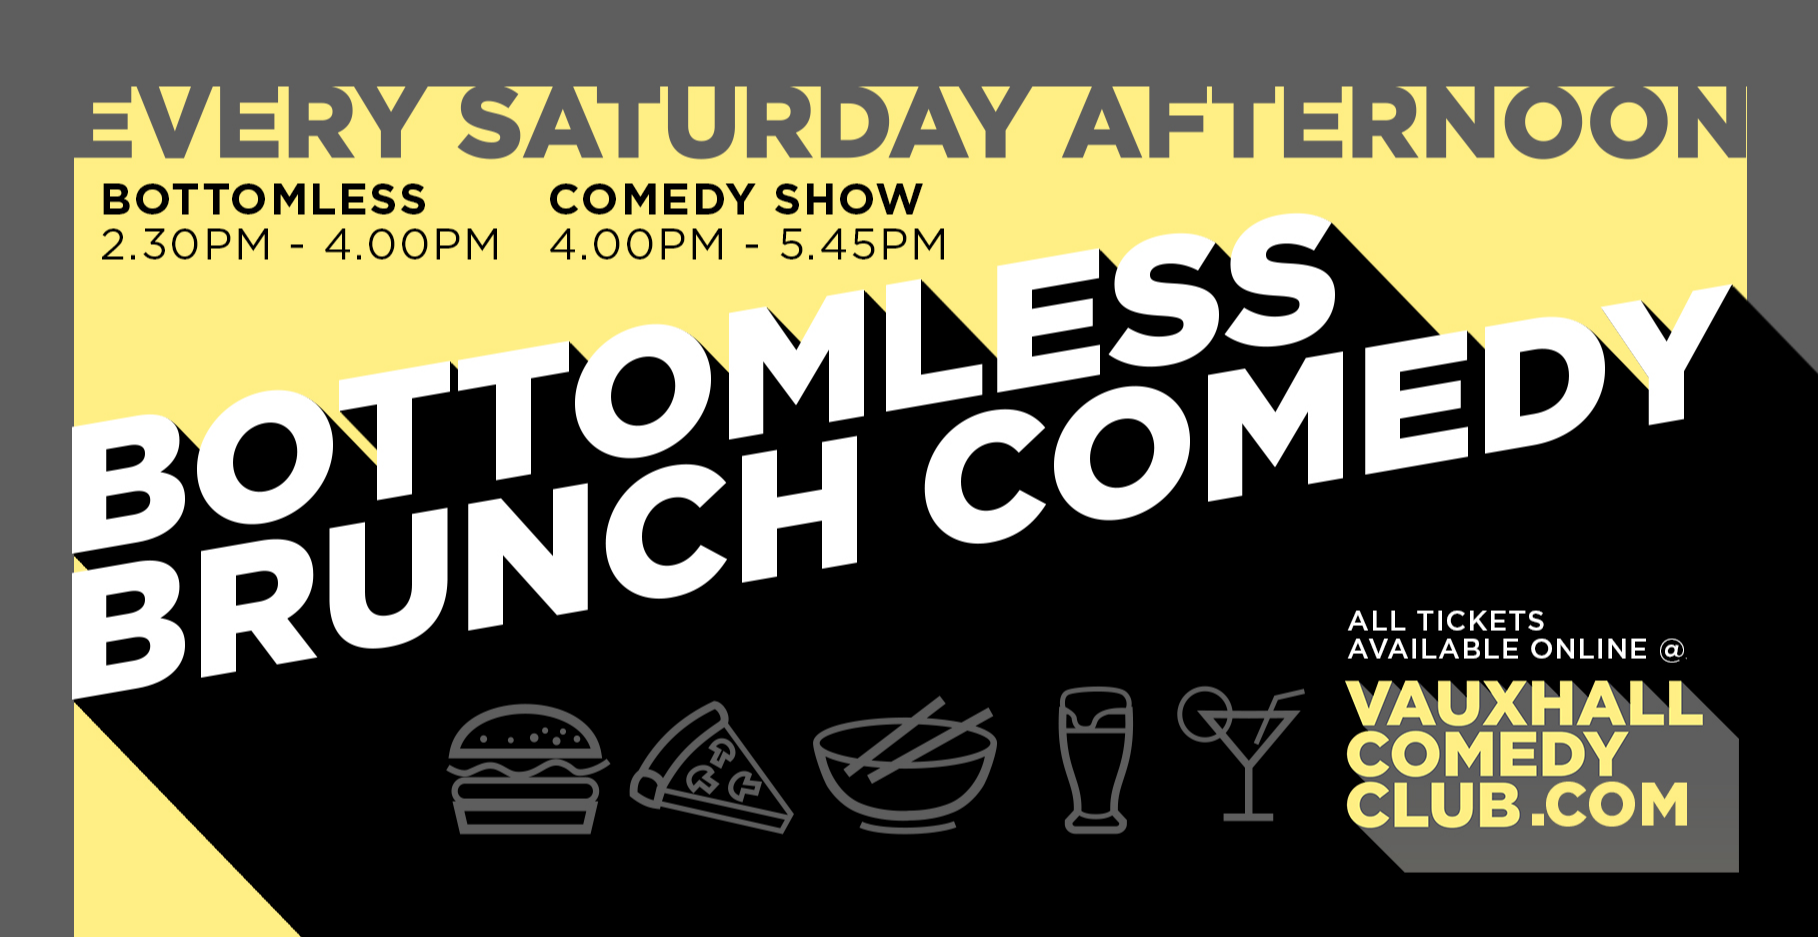 Bottomless Brunch Comedy